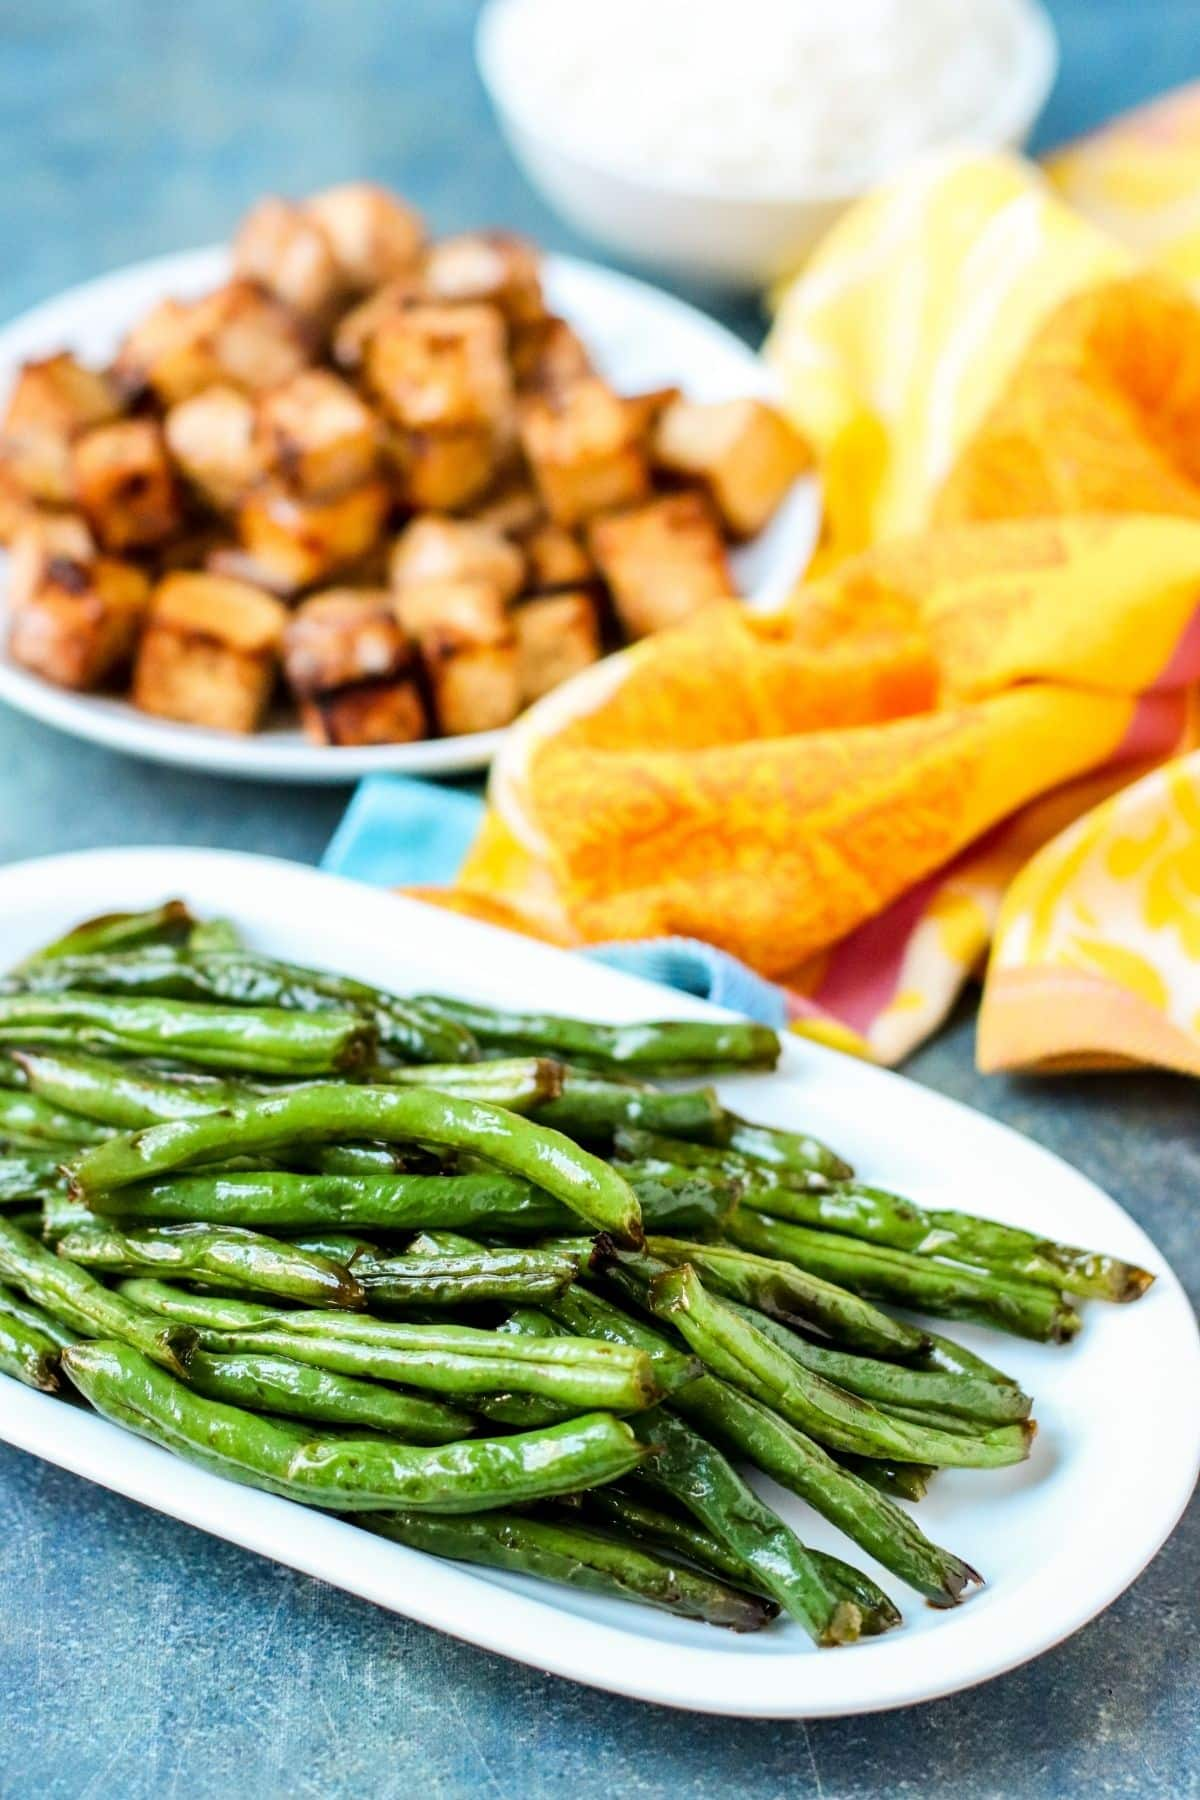 air fryer green beans on a white plate with another plate with tofu cubes in the background